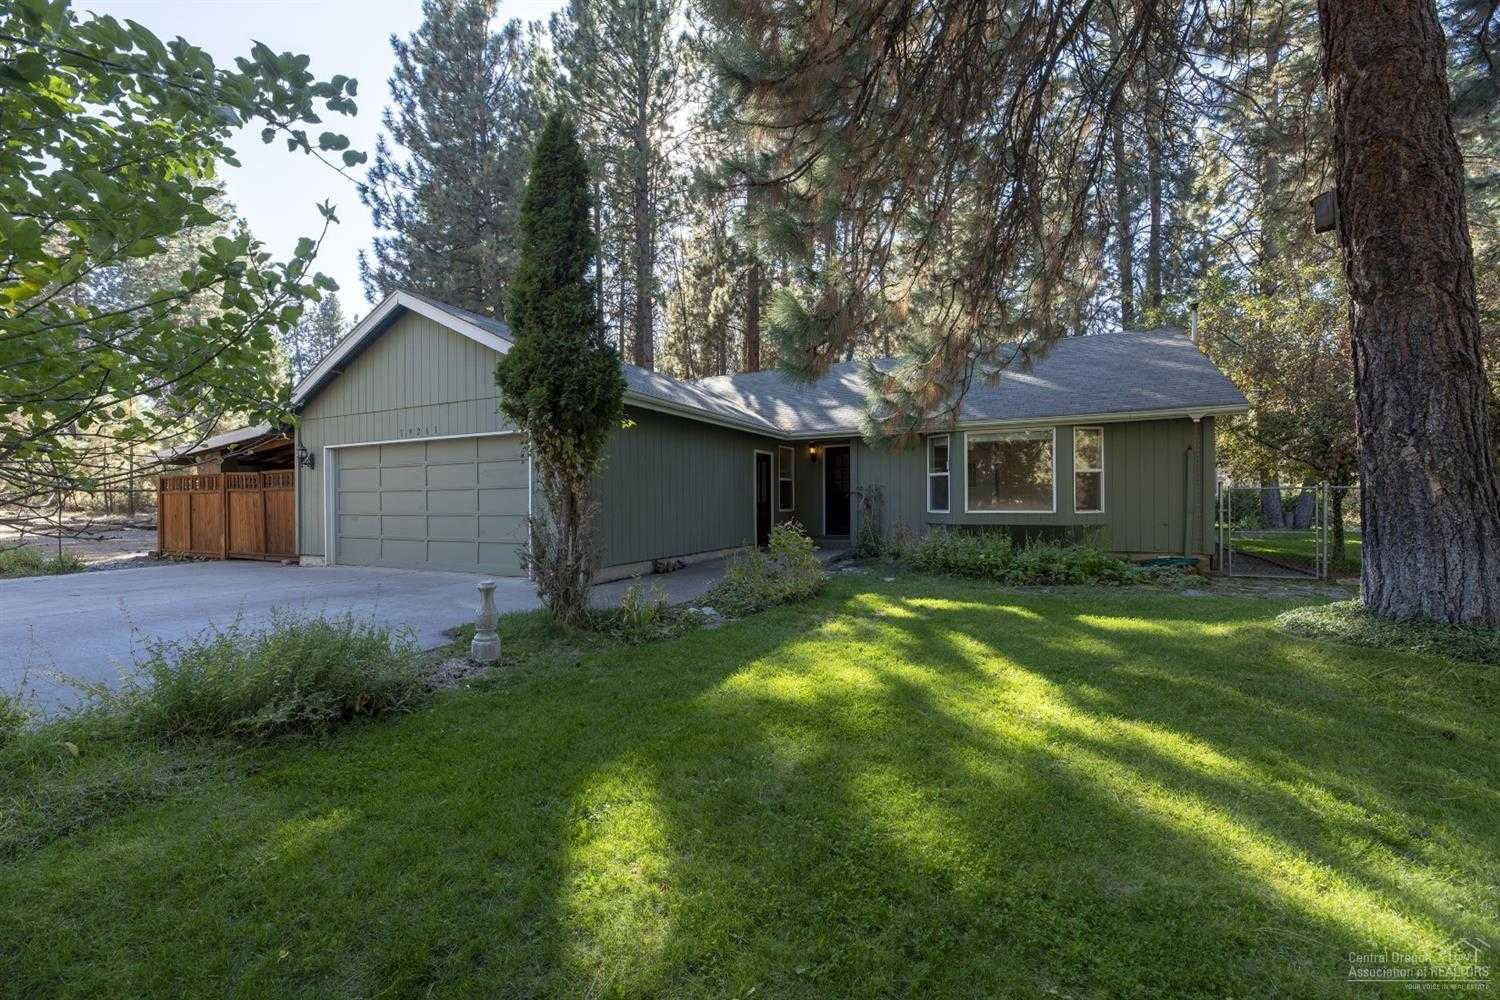 $403,000 - 3Br/2Ba -  for Sale in Bend